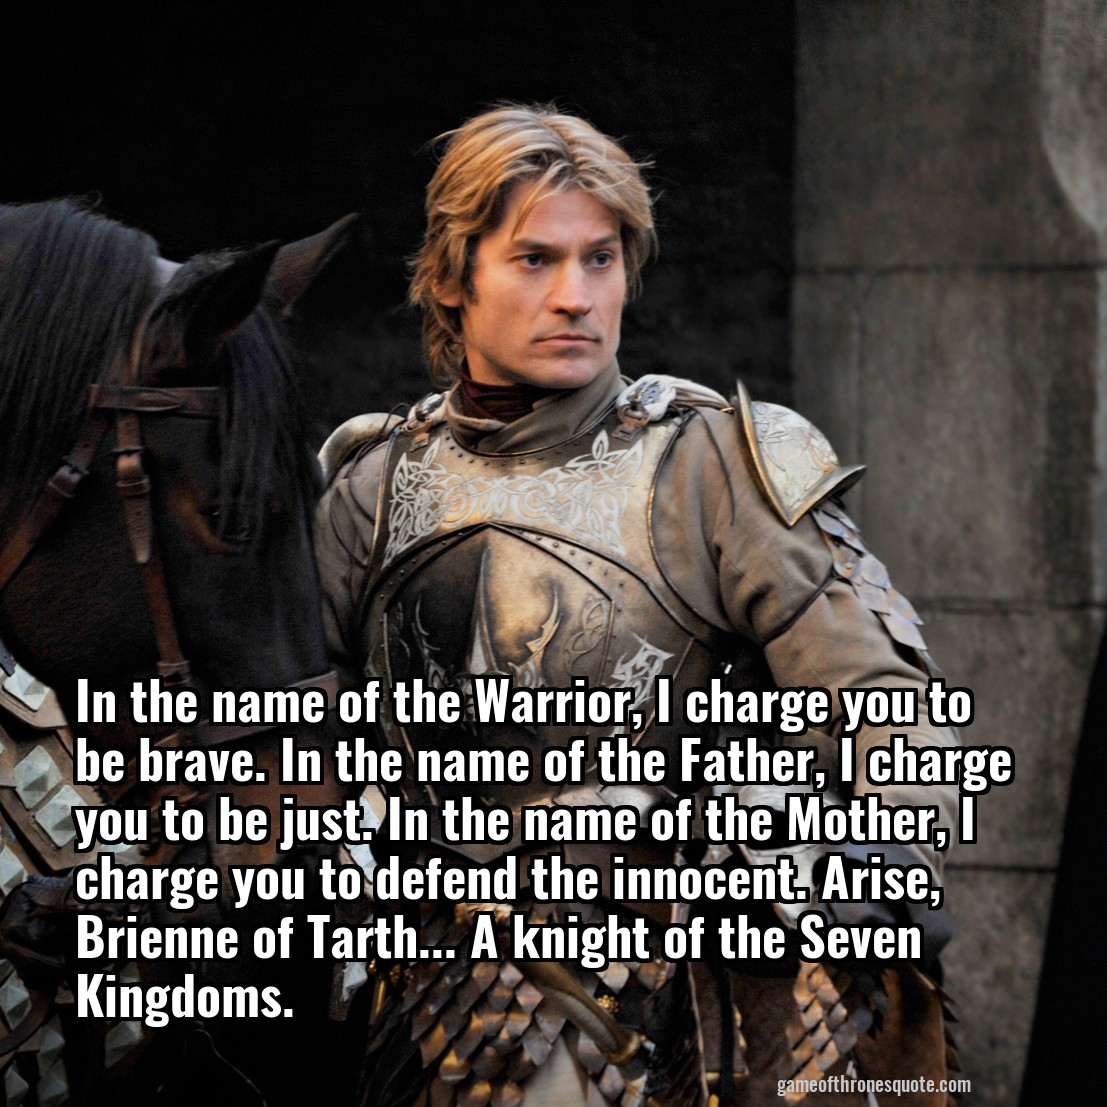 Jaime Lannister: In the name of the Warrior, I charge you to